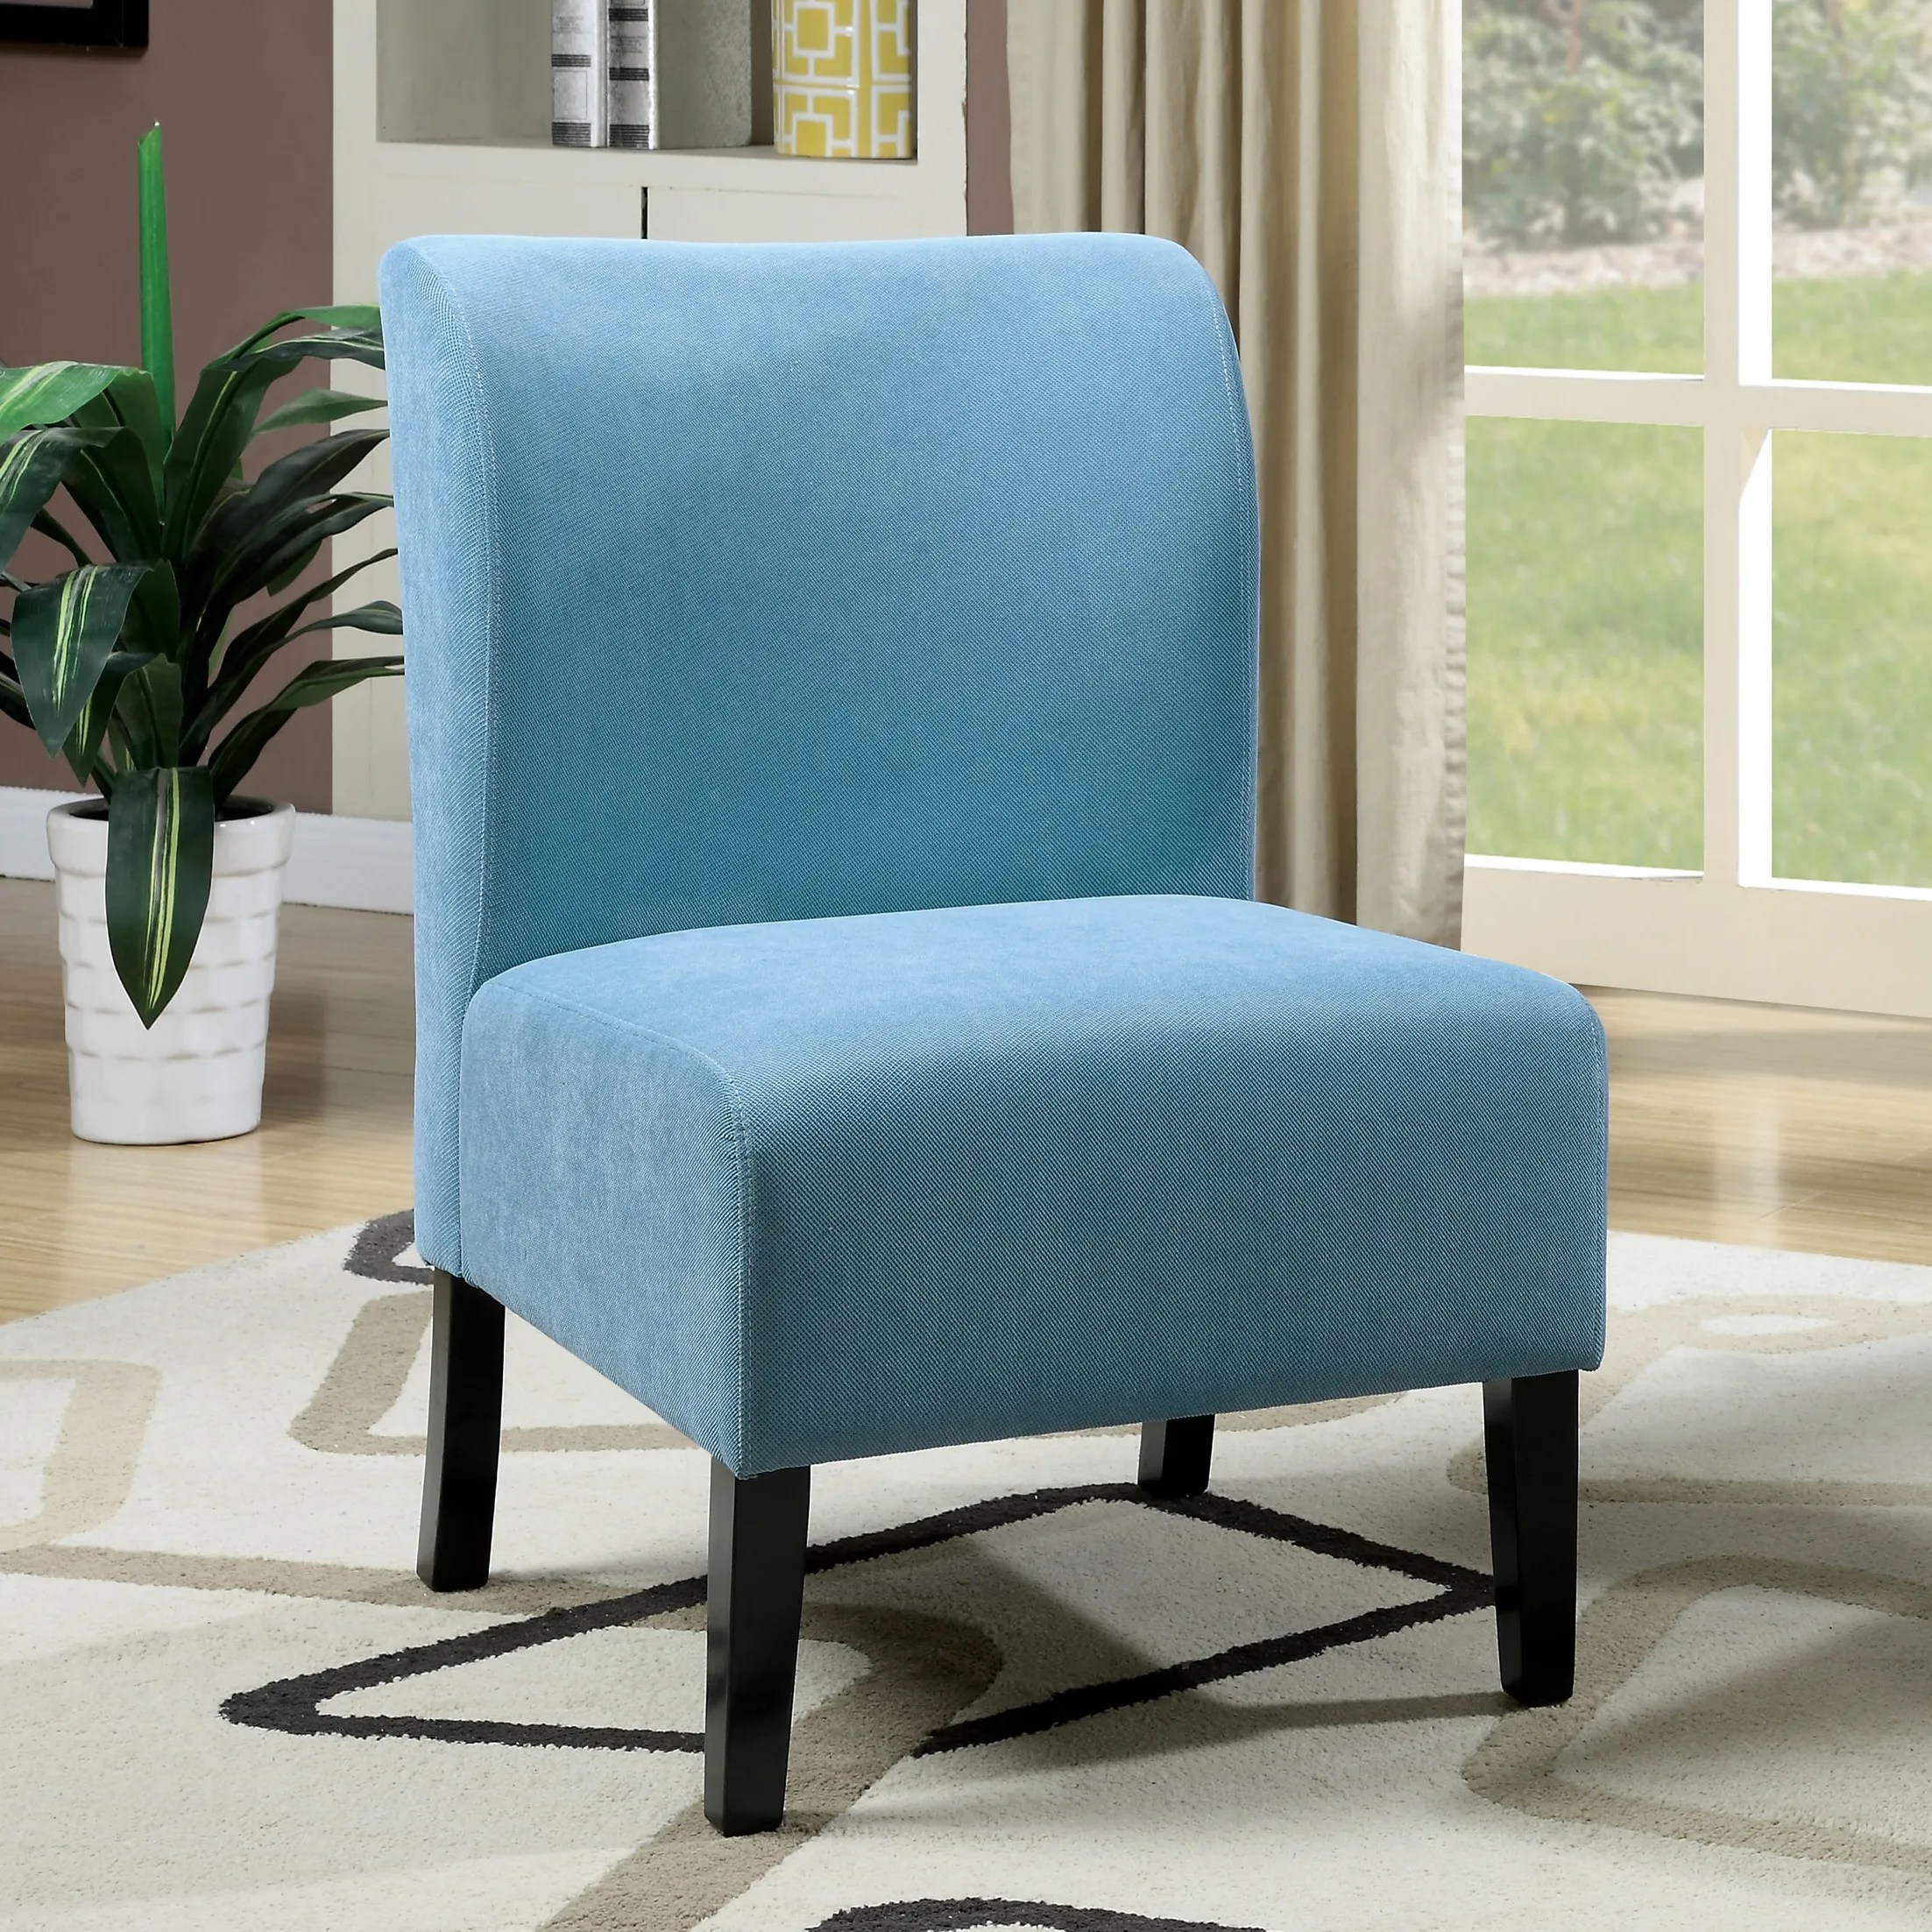 Blue Slipper Chair Accent Chairs Reedsport Slipper Chair April 2019